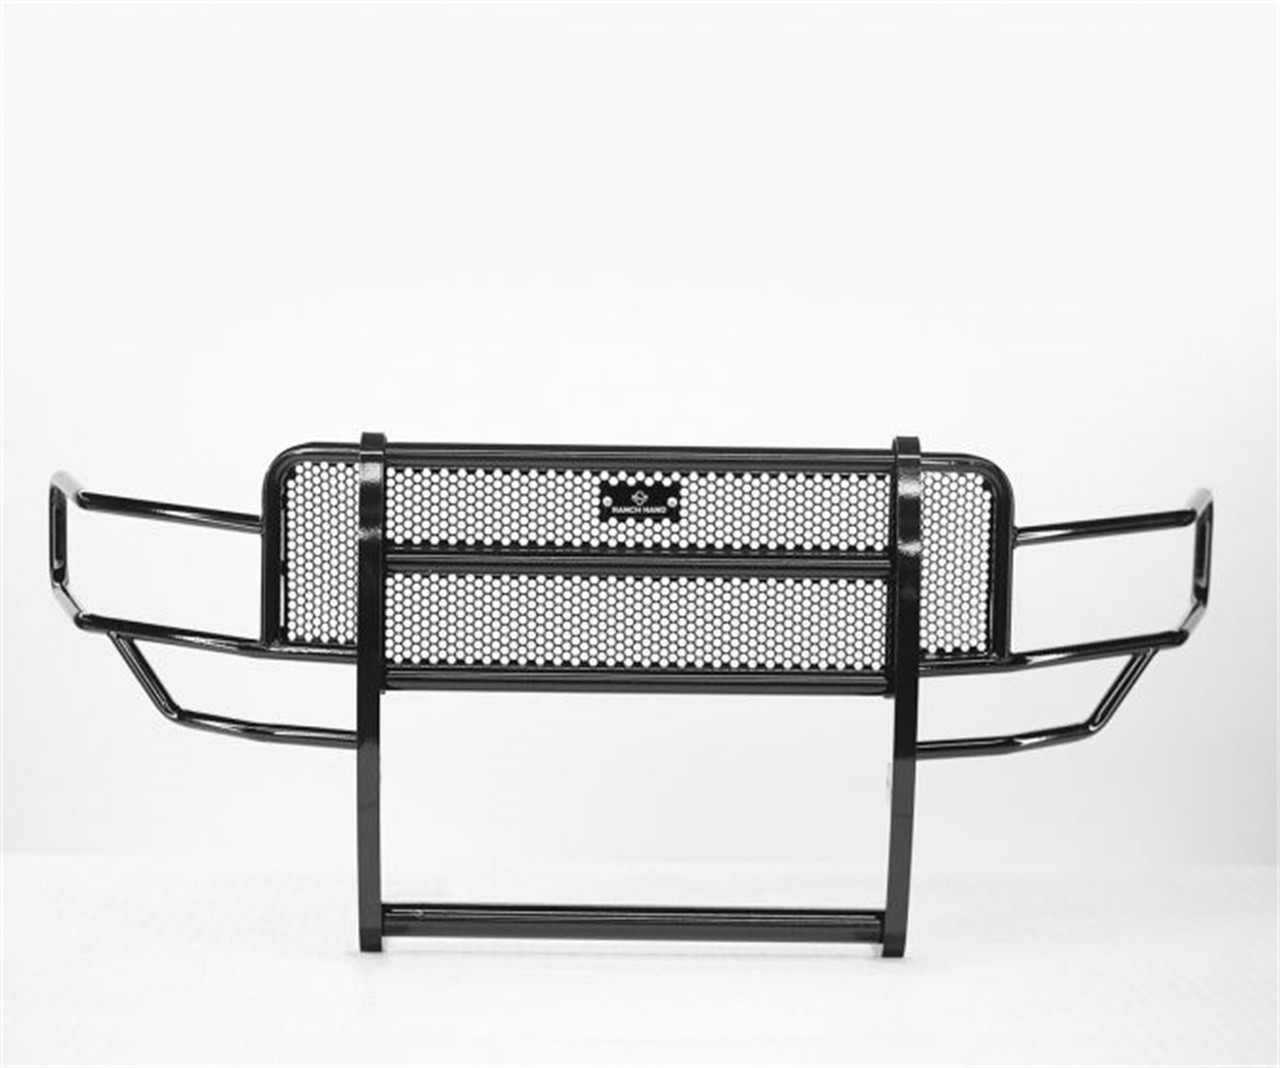 02-05 RAM 1500 LEGEND GRILLE GUARD